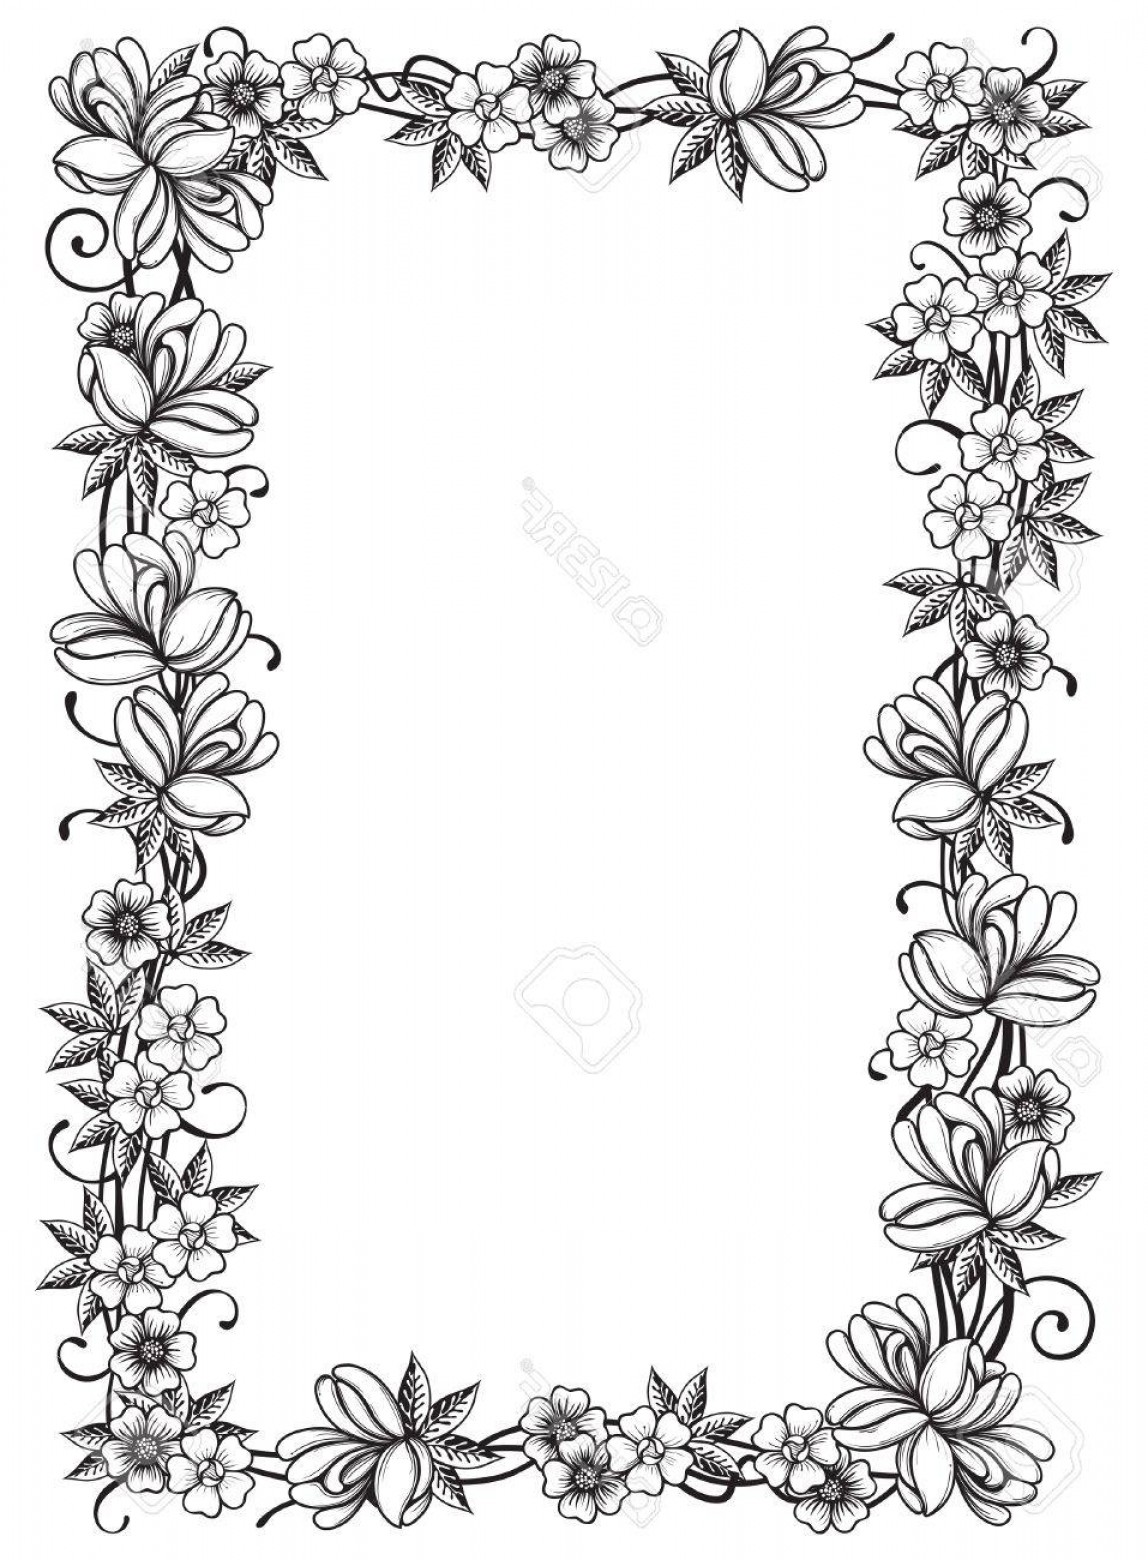 AT-AT Vector: Photoretro Floral Frame Ornate Border With Many Flowers And Leaves At At Engraving Style